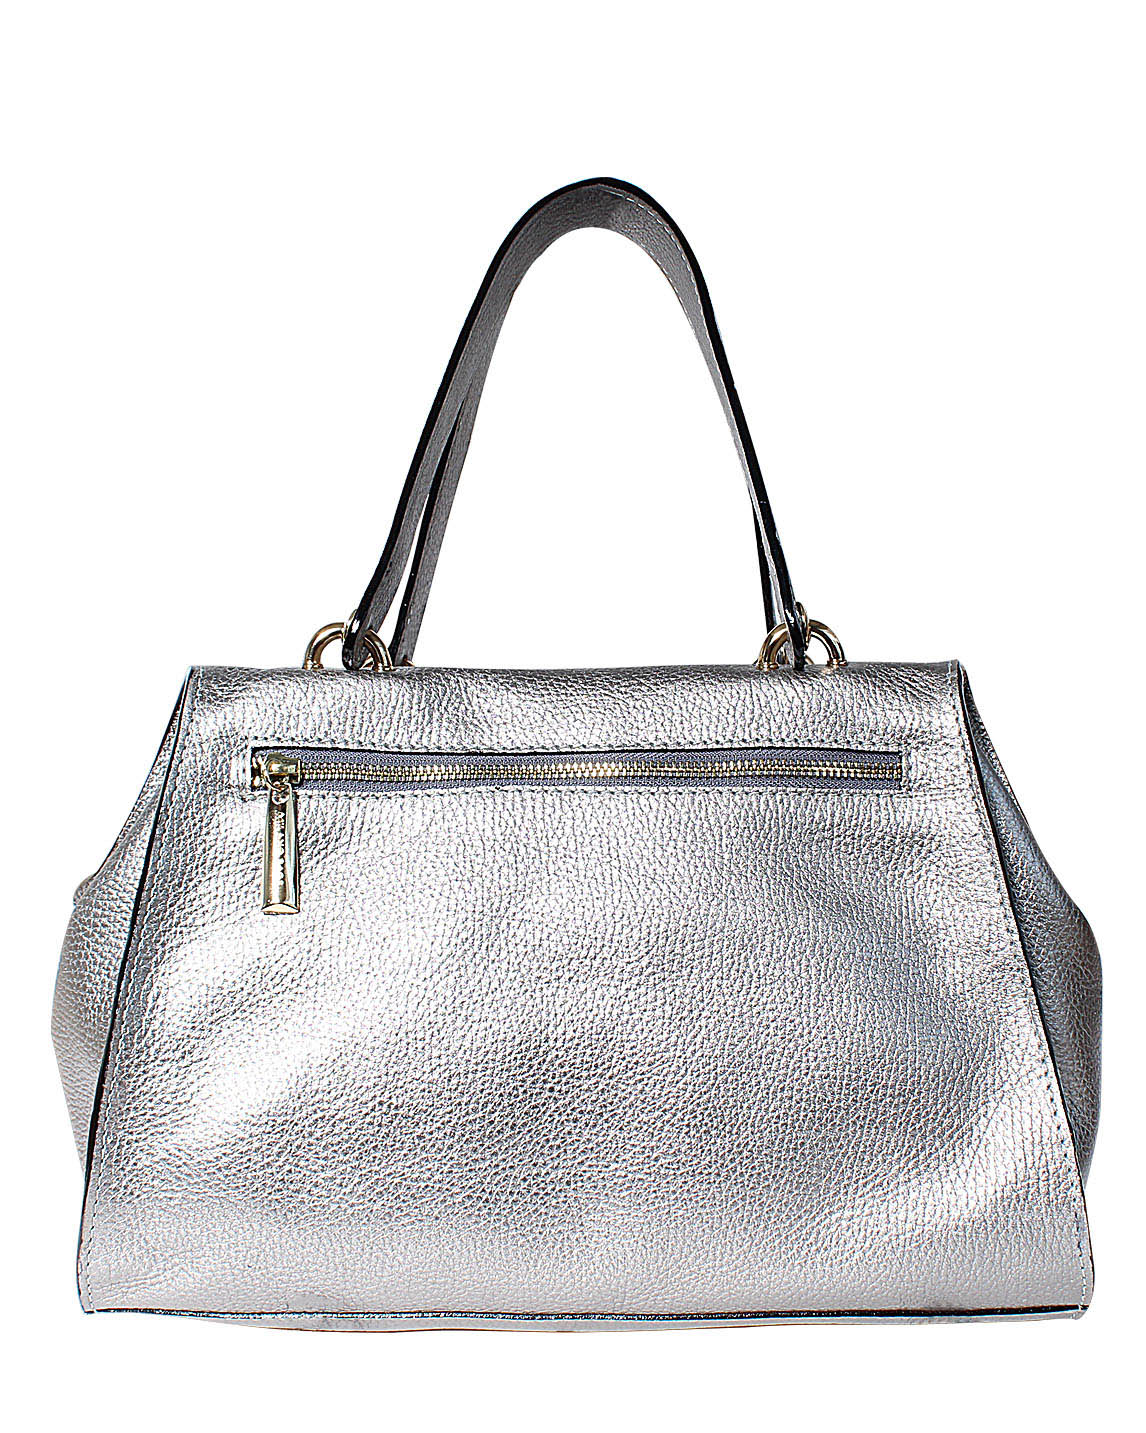 Cartera Tote Bags DS-3208 Color Plata